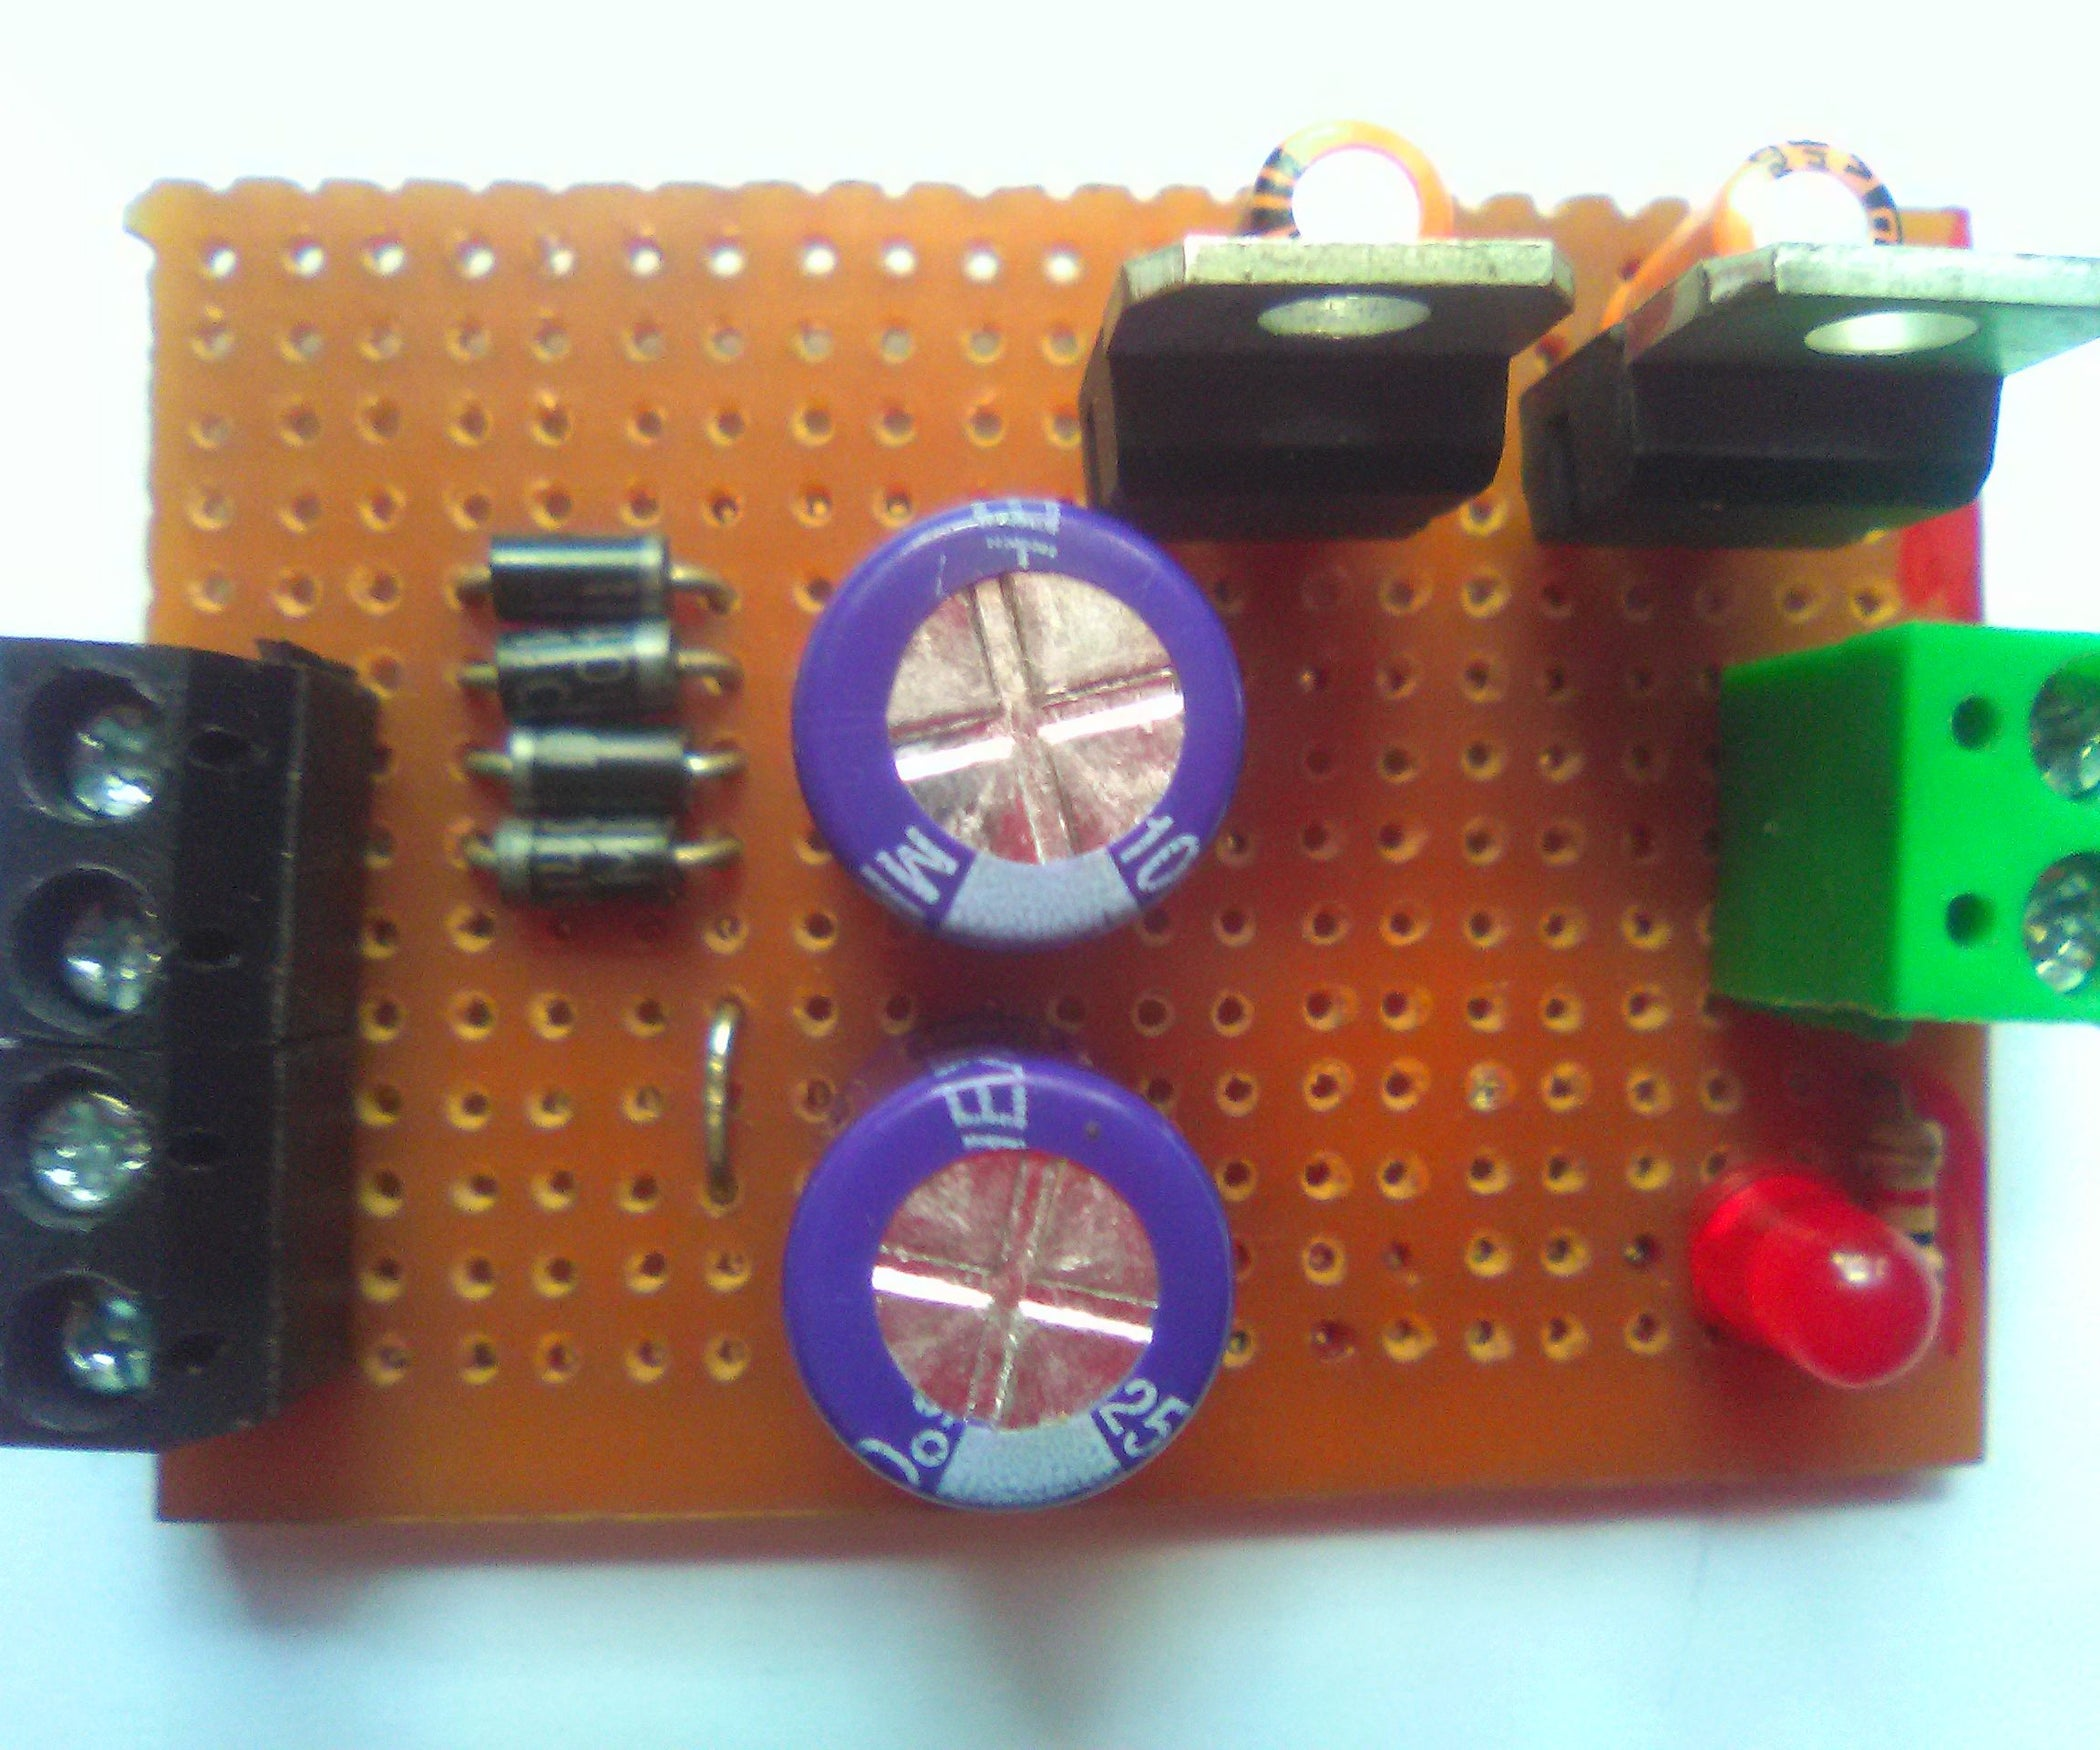 5v And Dual Regulated Power Supply 6 Steps With Pictures 7805 Pin Diagram